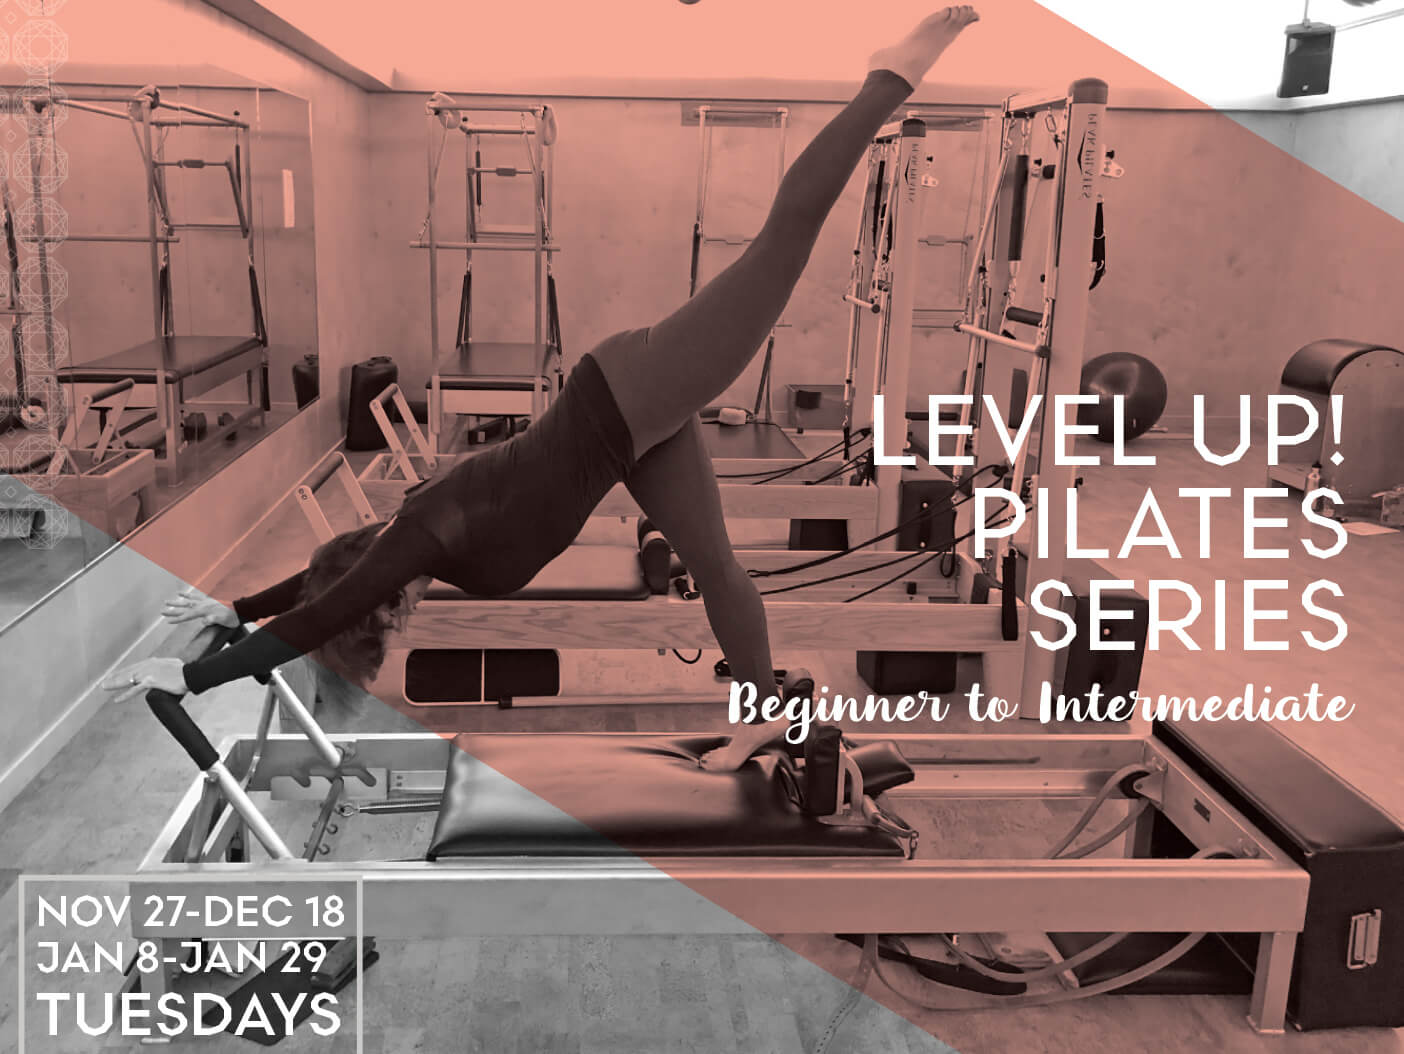 Level Up! Pilates Series